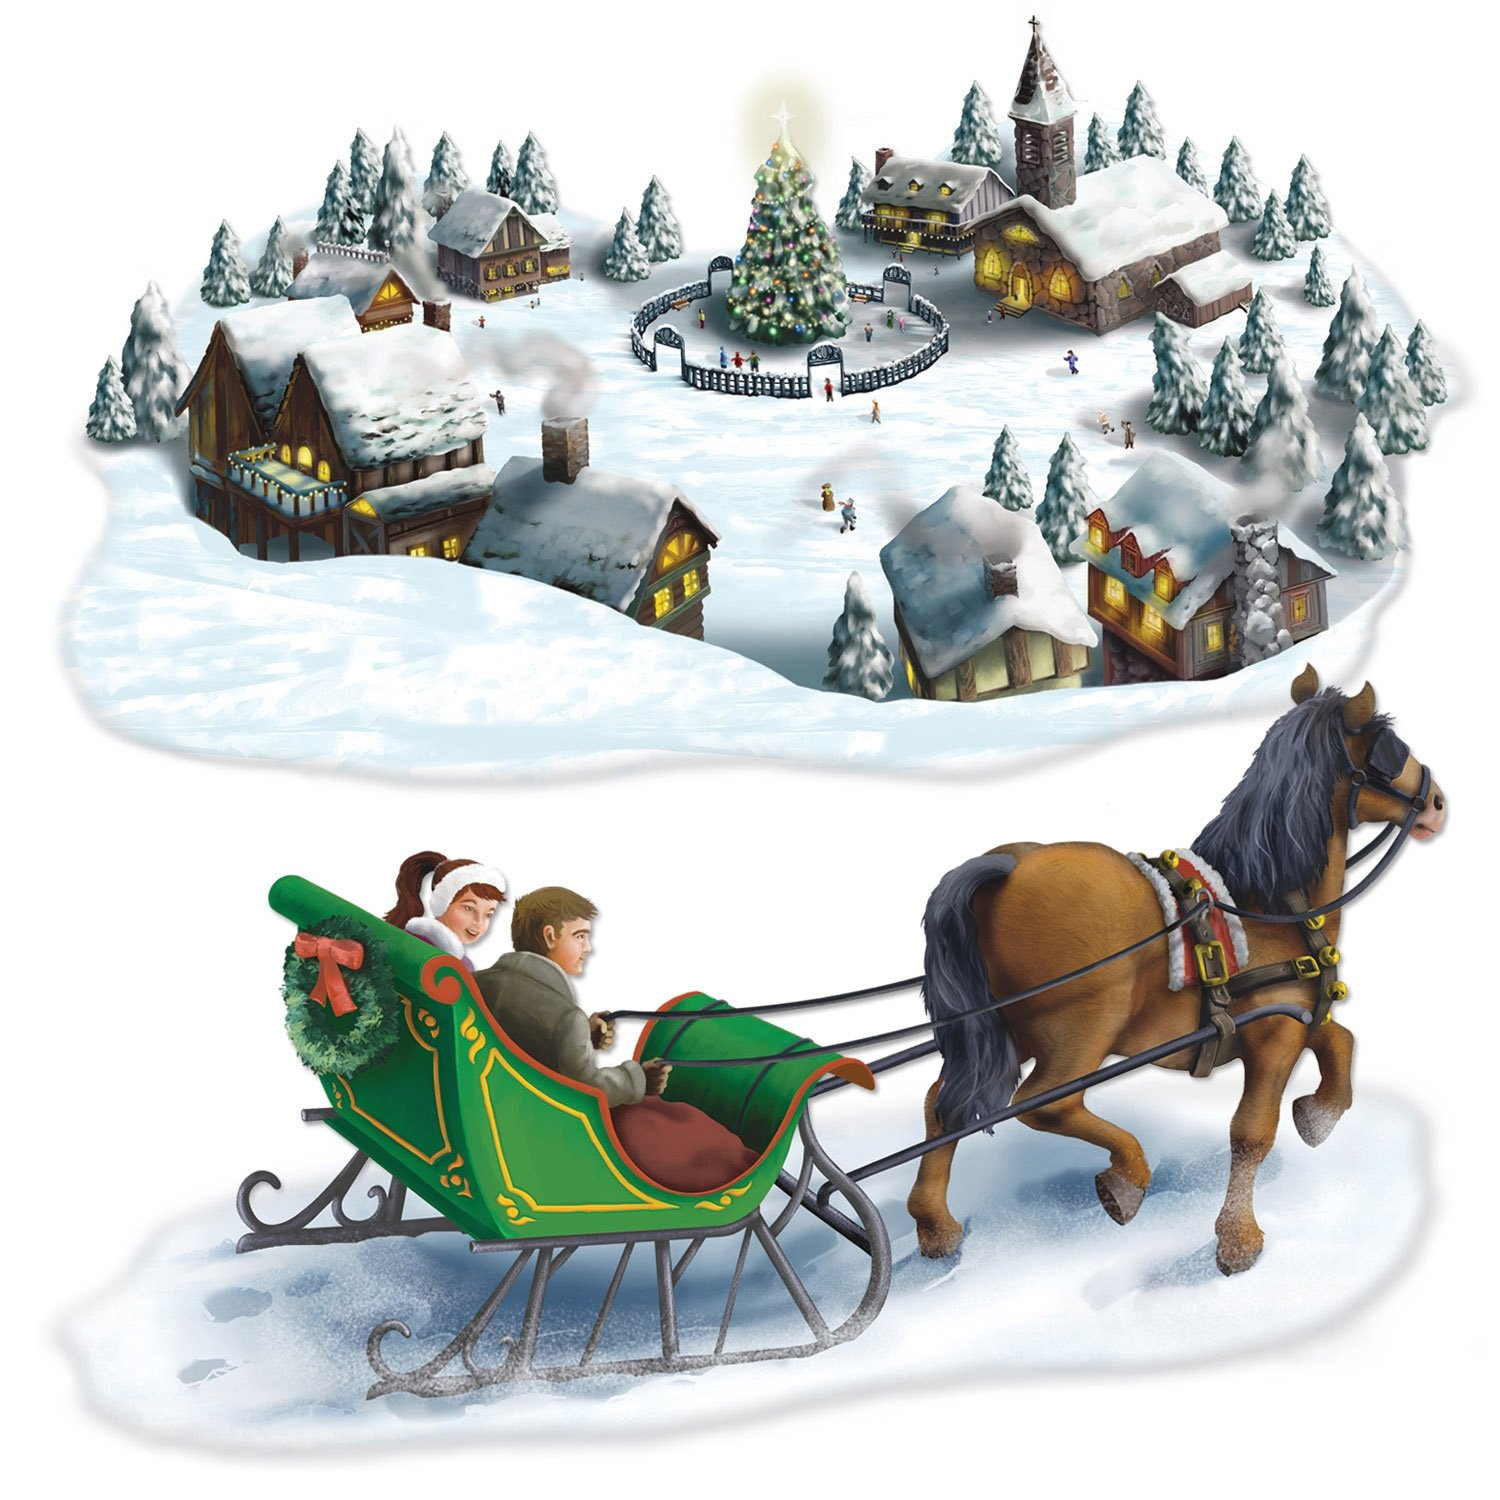 Amazon.com: Holiday Village & Sleigh Ride Props Party Accessory (1 ...